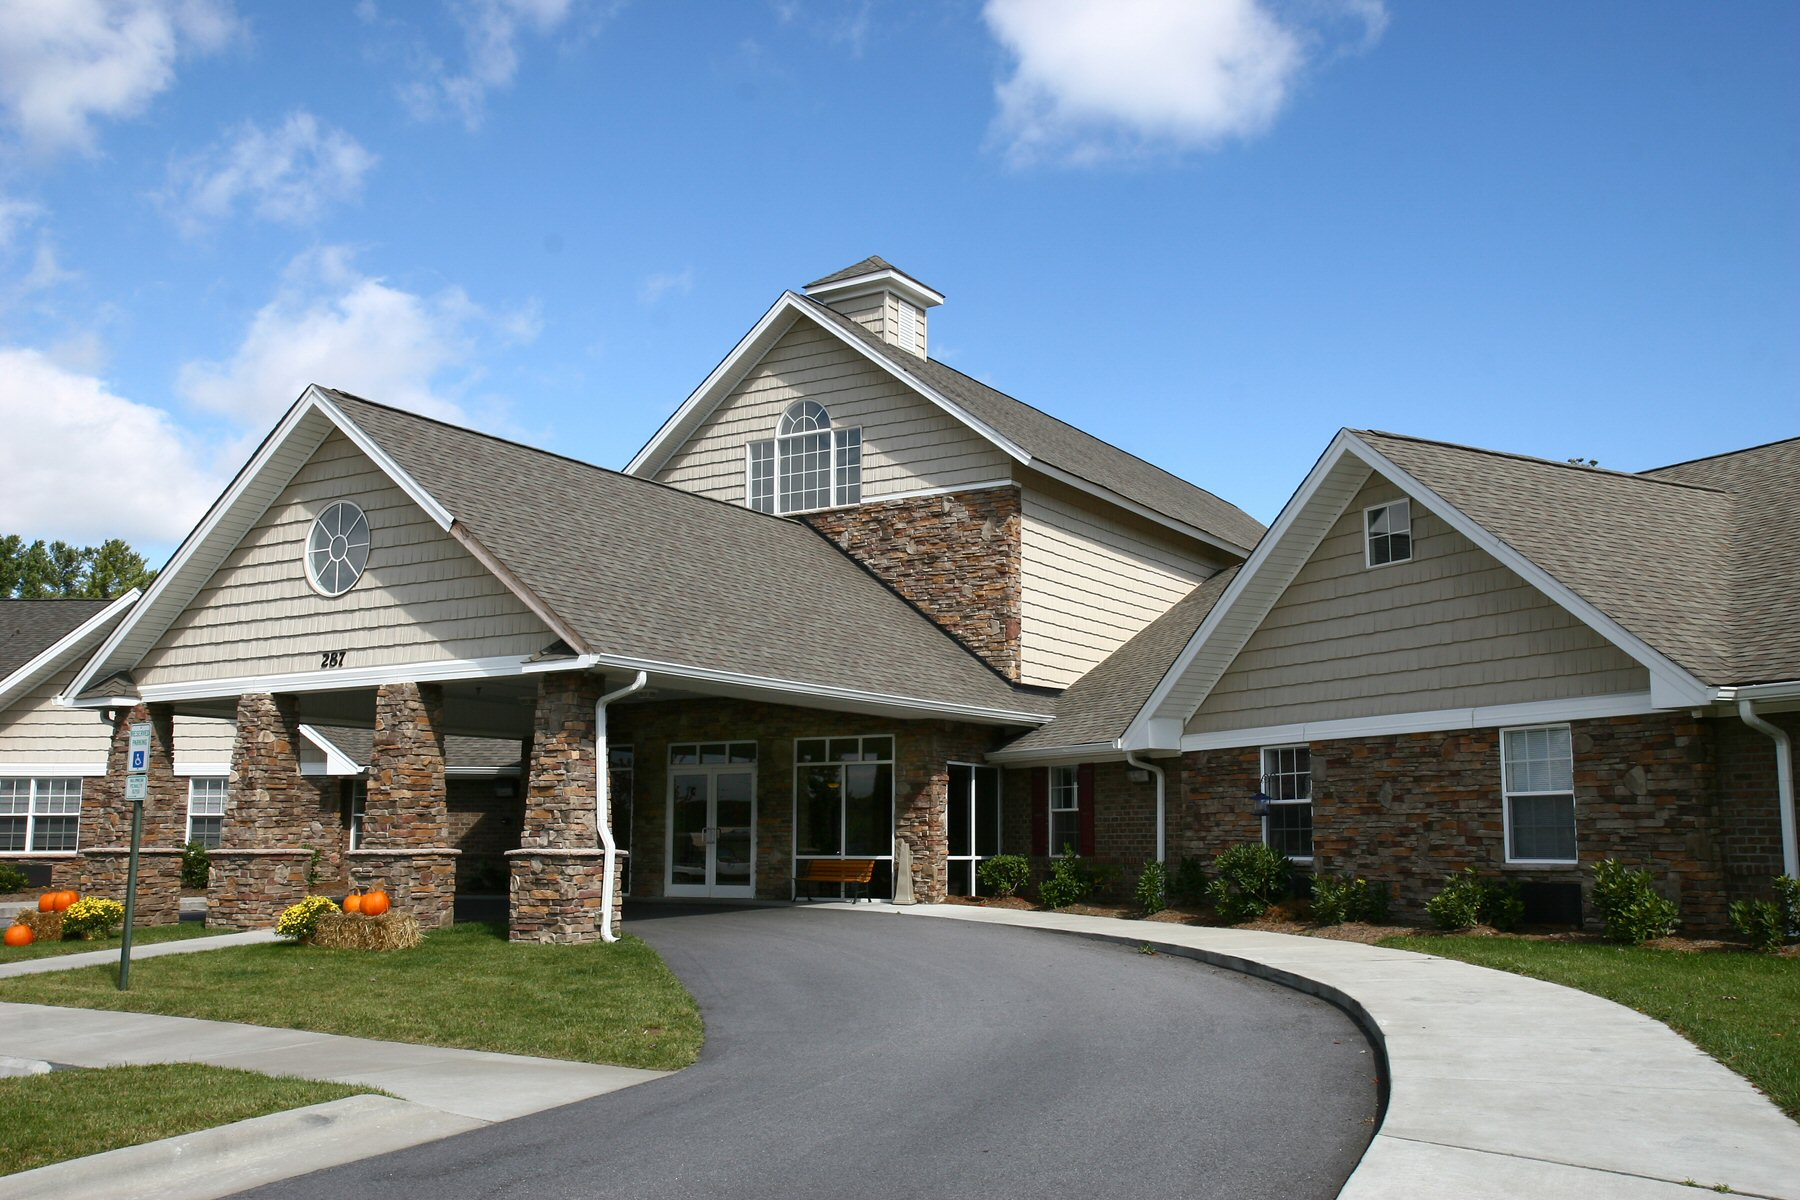 lime ridge senior dating site Find 39 senior housing options in lime ridge, pa for 55+ communities, independent living, assisted living and more on seniorhousingnetcom.